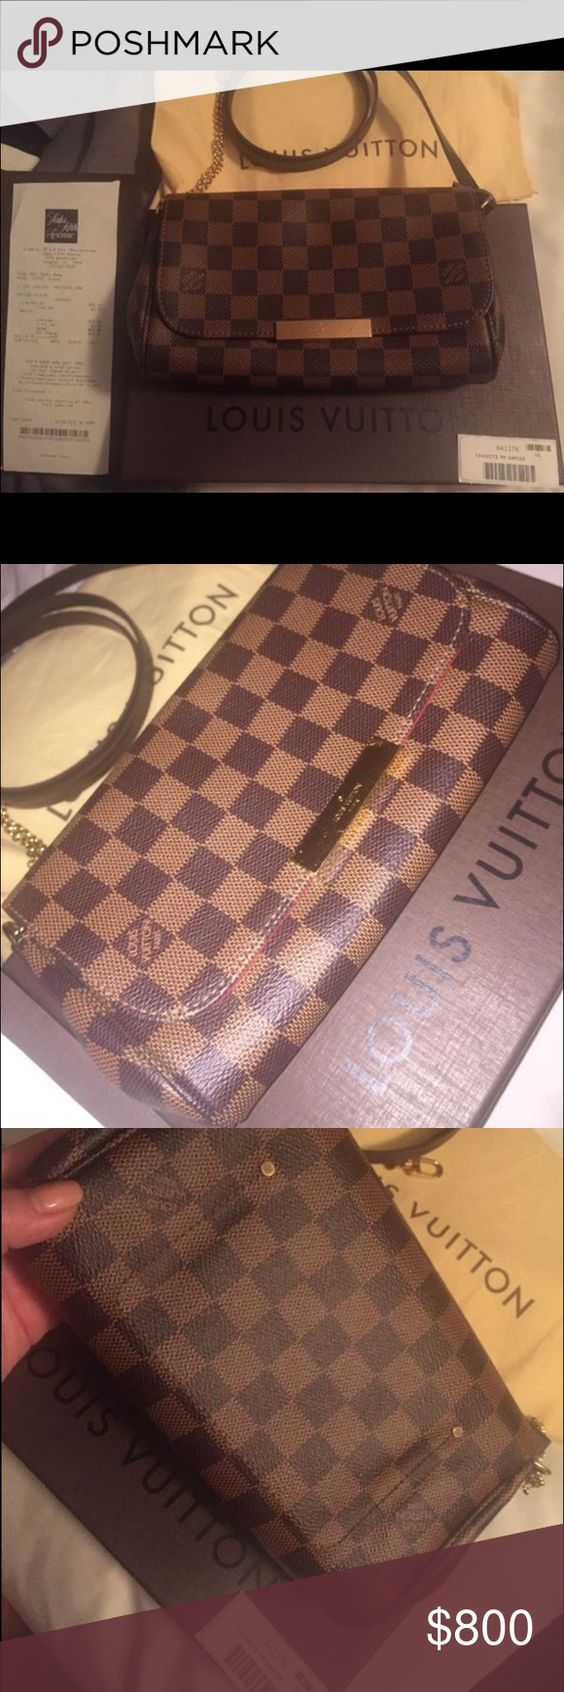 Louis Vuitton Favorite PM AUTHENTIC Louis Vuitton Favorite. A few scratches on front bc of the chain. Receipt from SAKS. Comes with all original packaging and dust bag. Make an offer we can negotiate. Paid ~870 with tax. Will take 700 with other payment options not on posh. ( fees) Louis Vuitton Bags Crossbody Bags